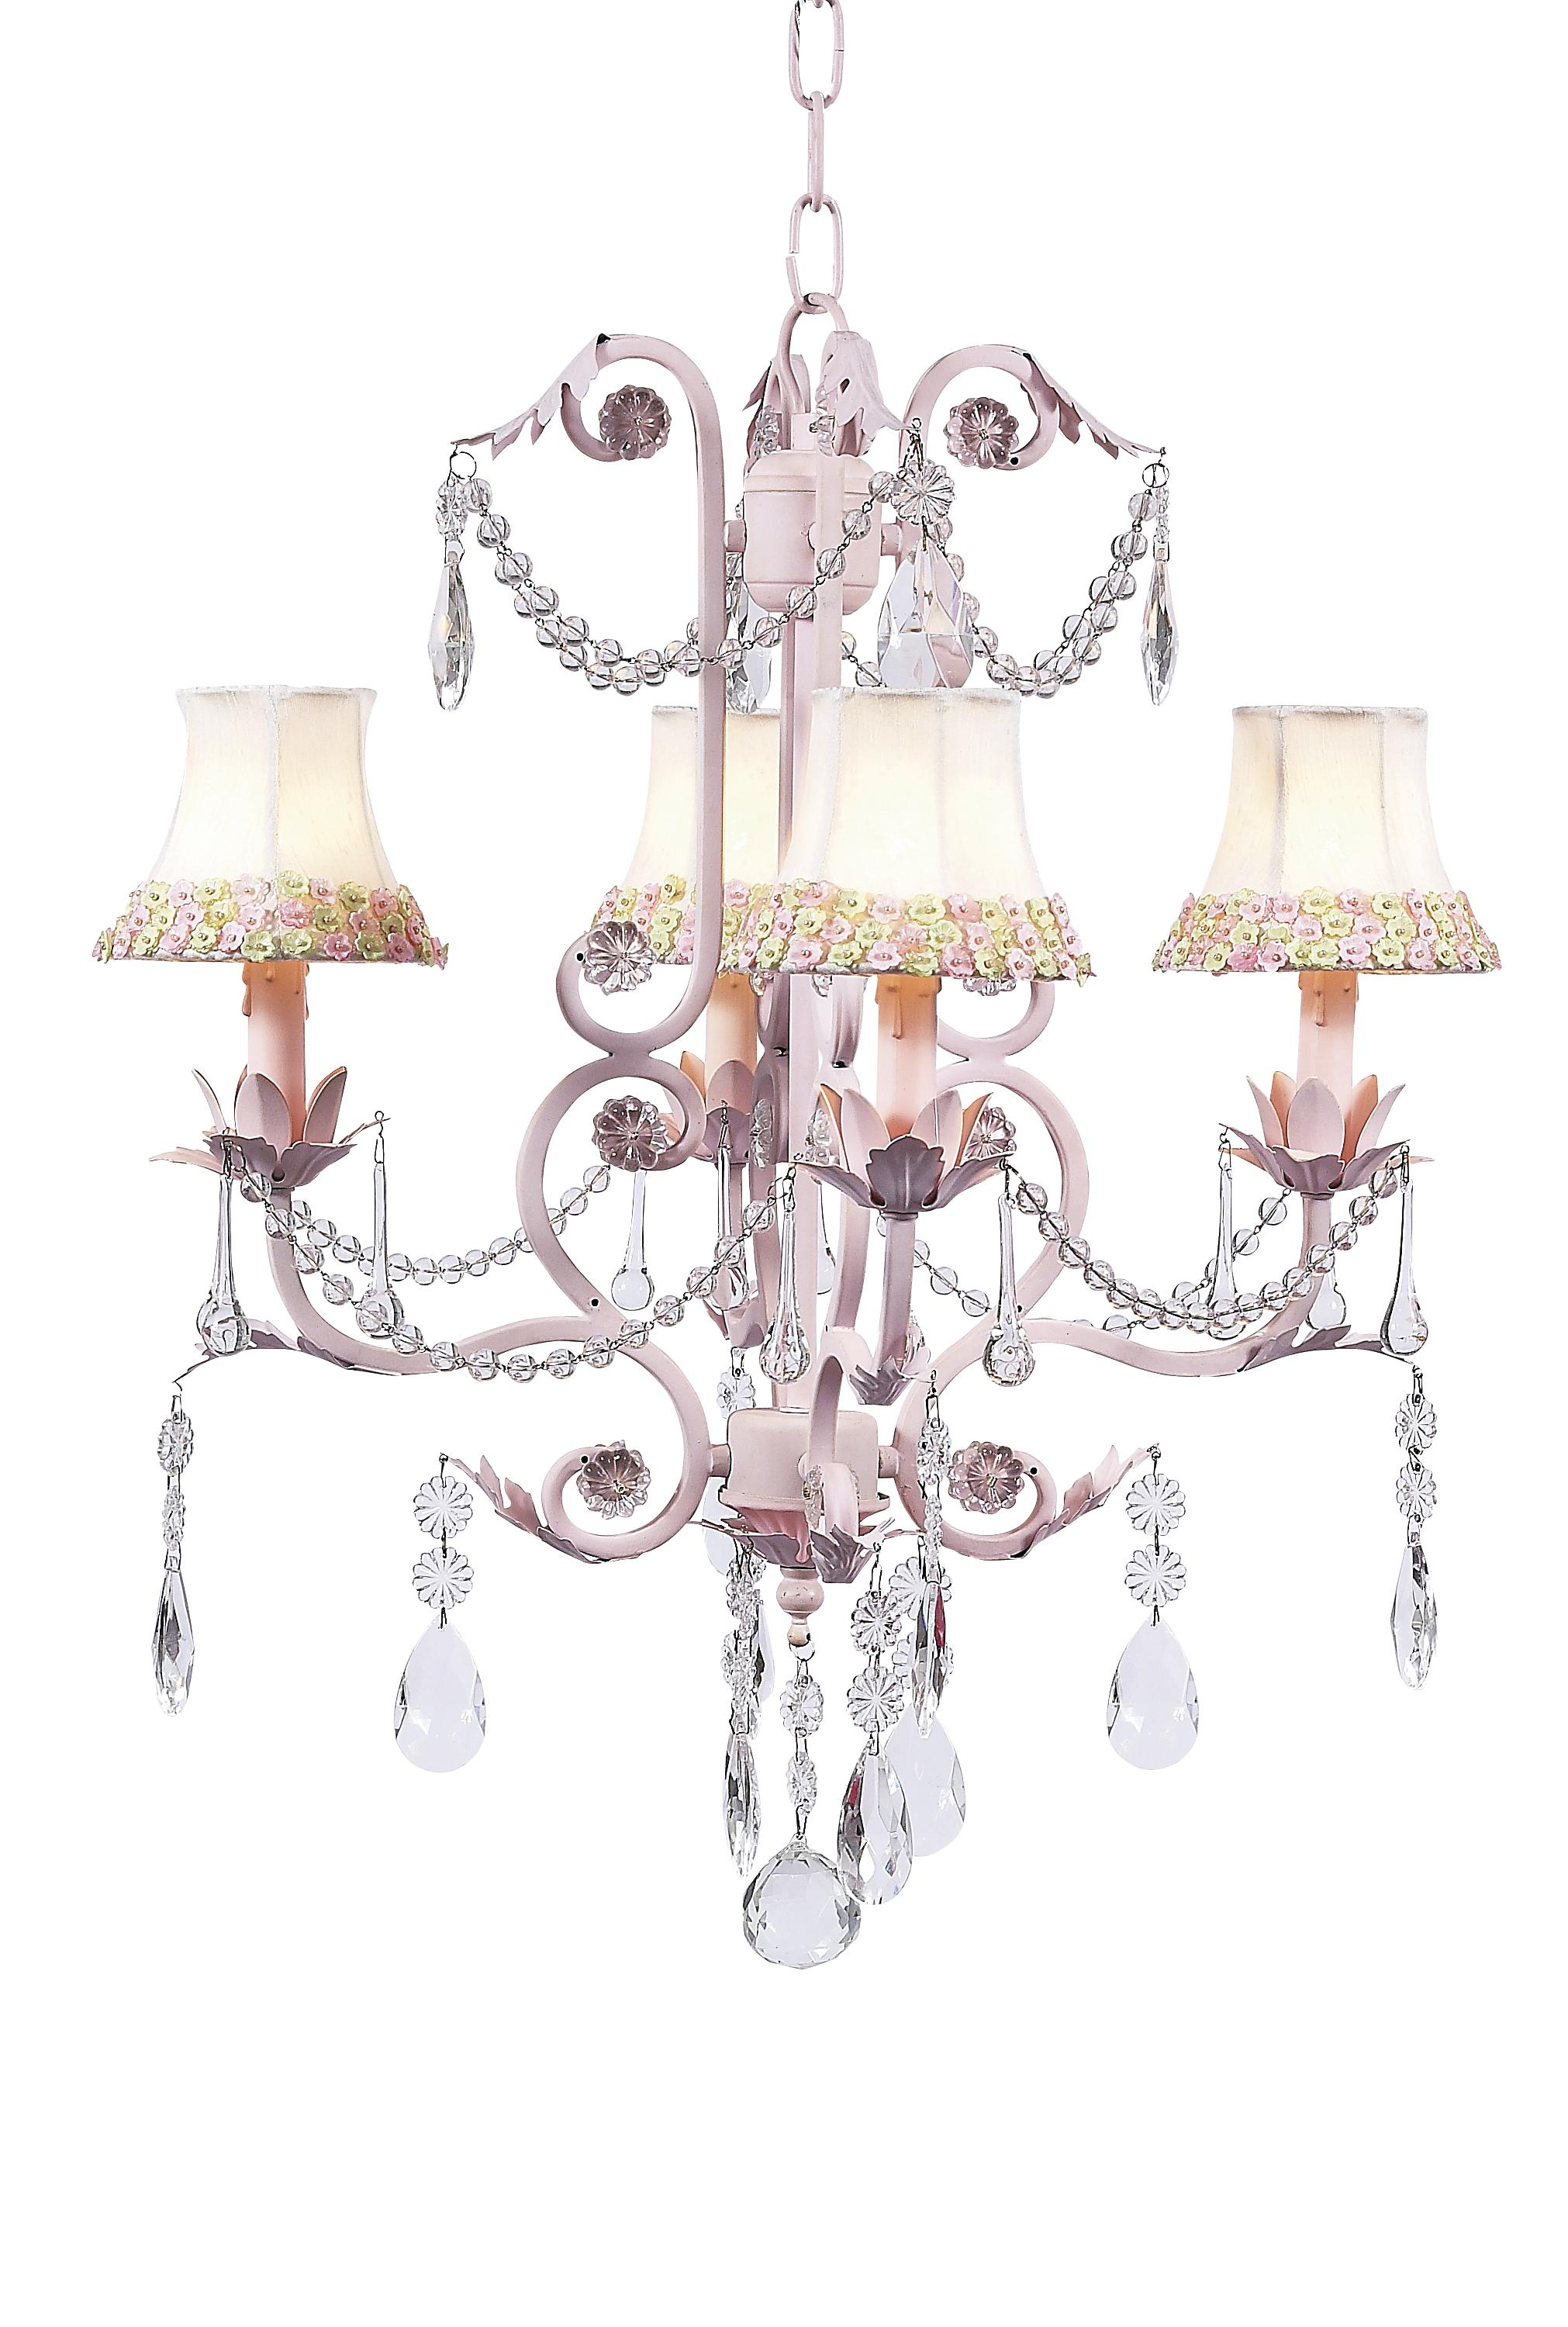 Flower border chandelier shades on valentino chandelier pinkgreen jubilee collection flower border chandelier shades on valentino chandelier pink green search results aloadofball Image collections